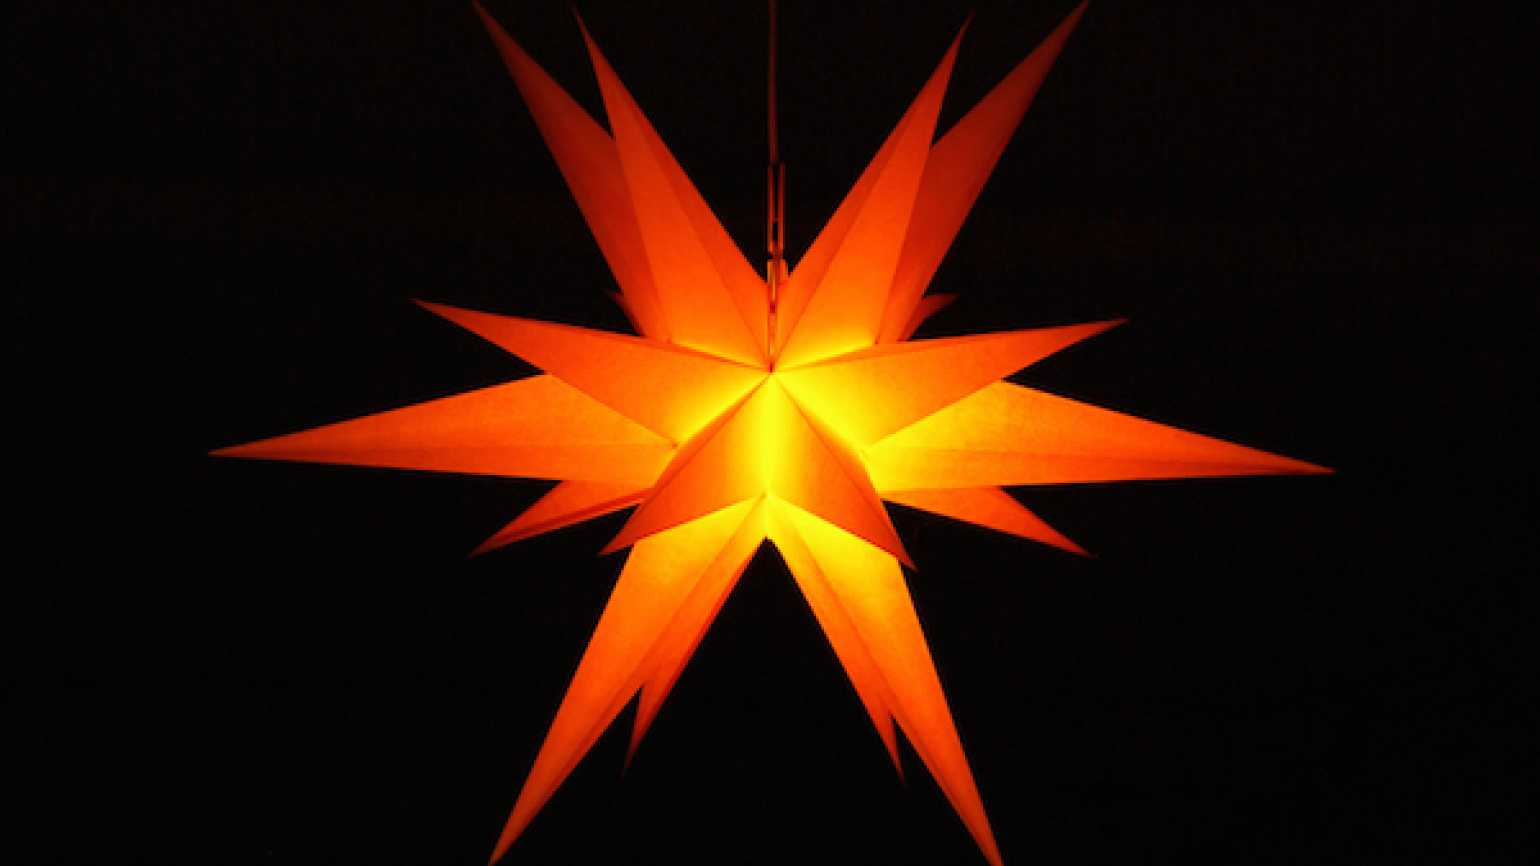 A Christmas star leads to a moment of family grace while decorating the Christmas tree.